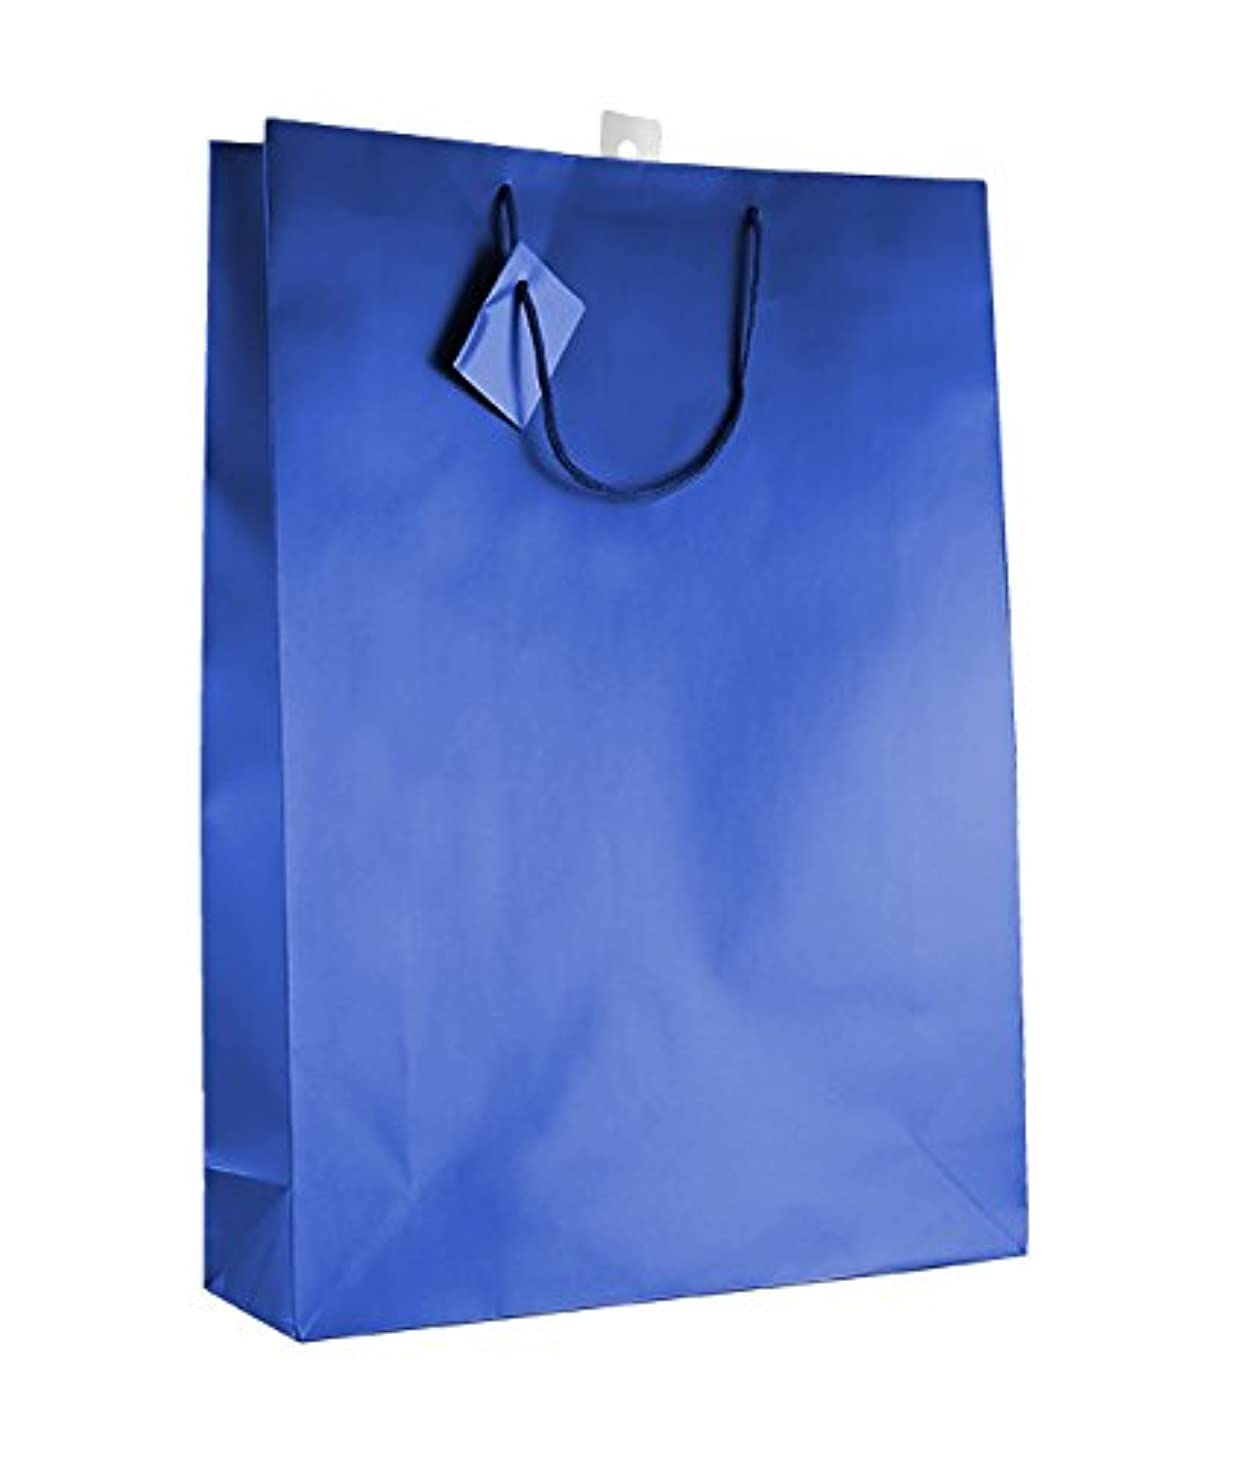 12-PC Solid Color Gift Bags, Matt Laminated, Dark Blue Color